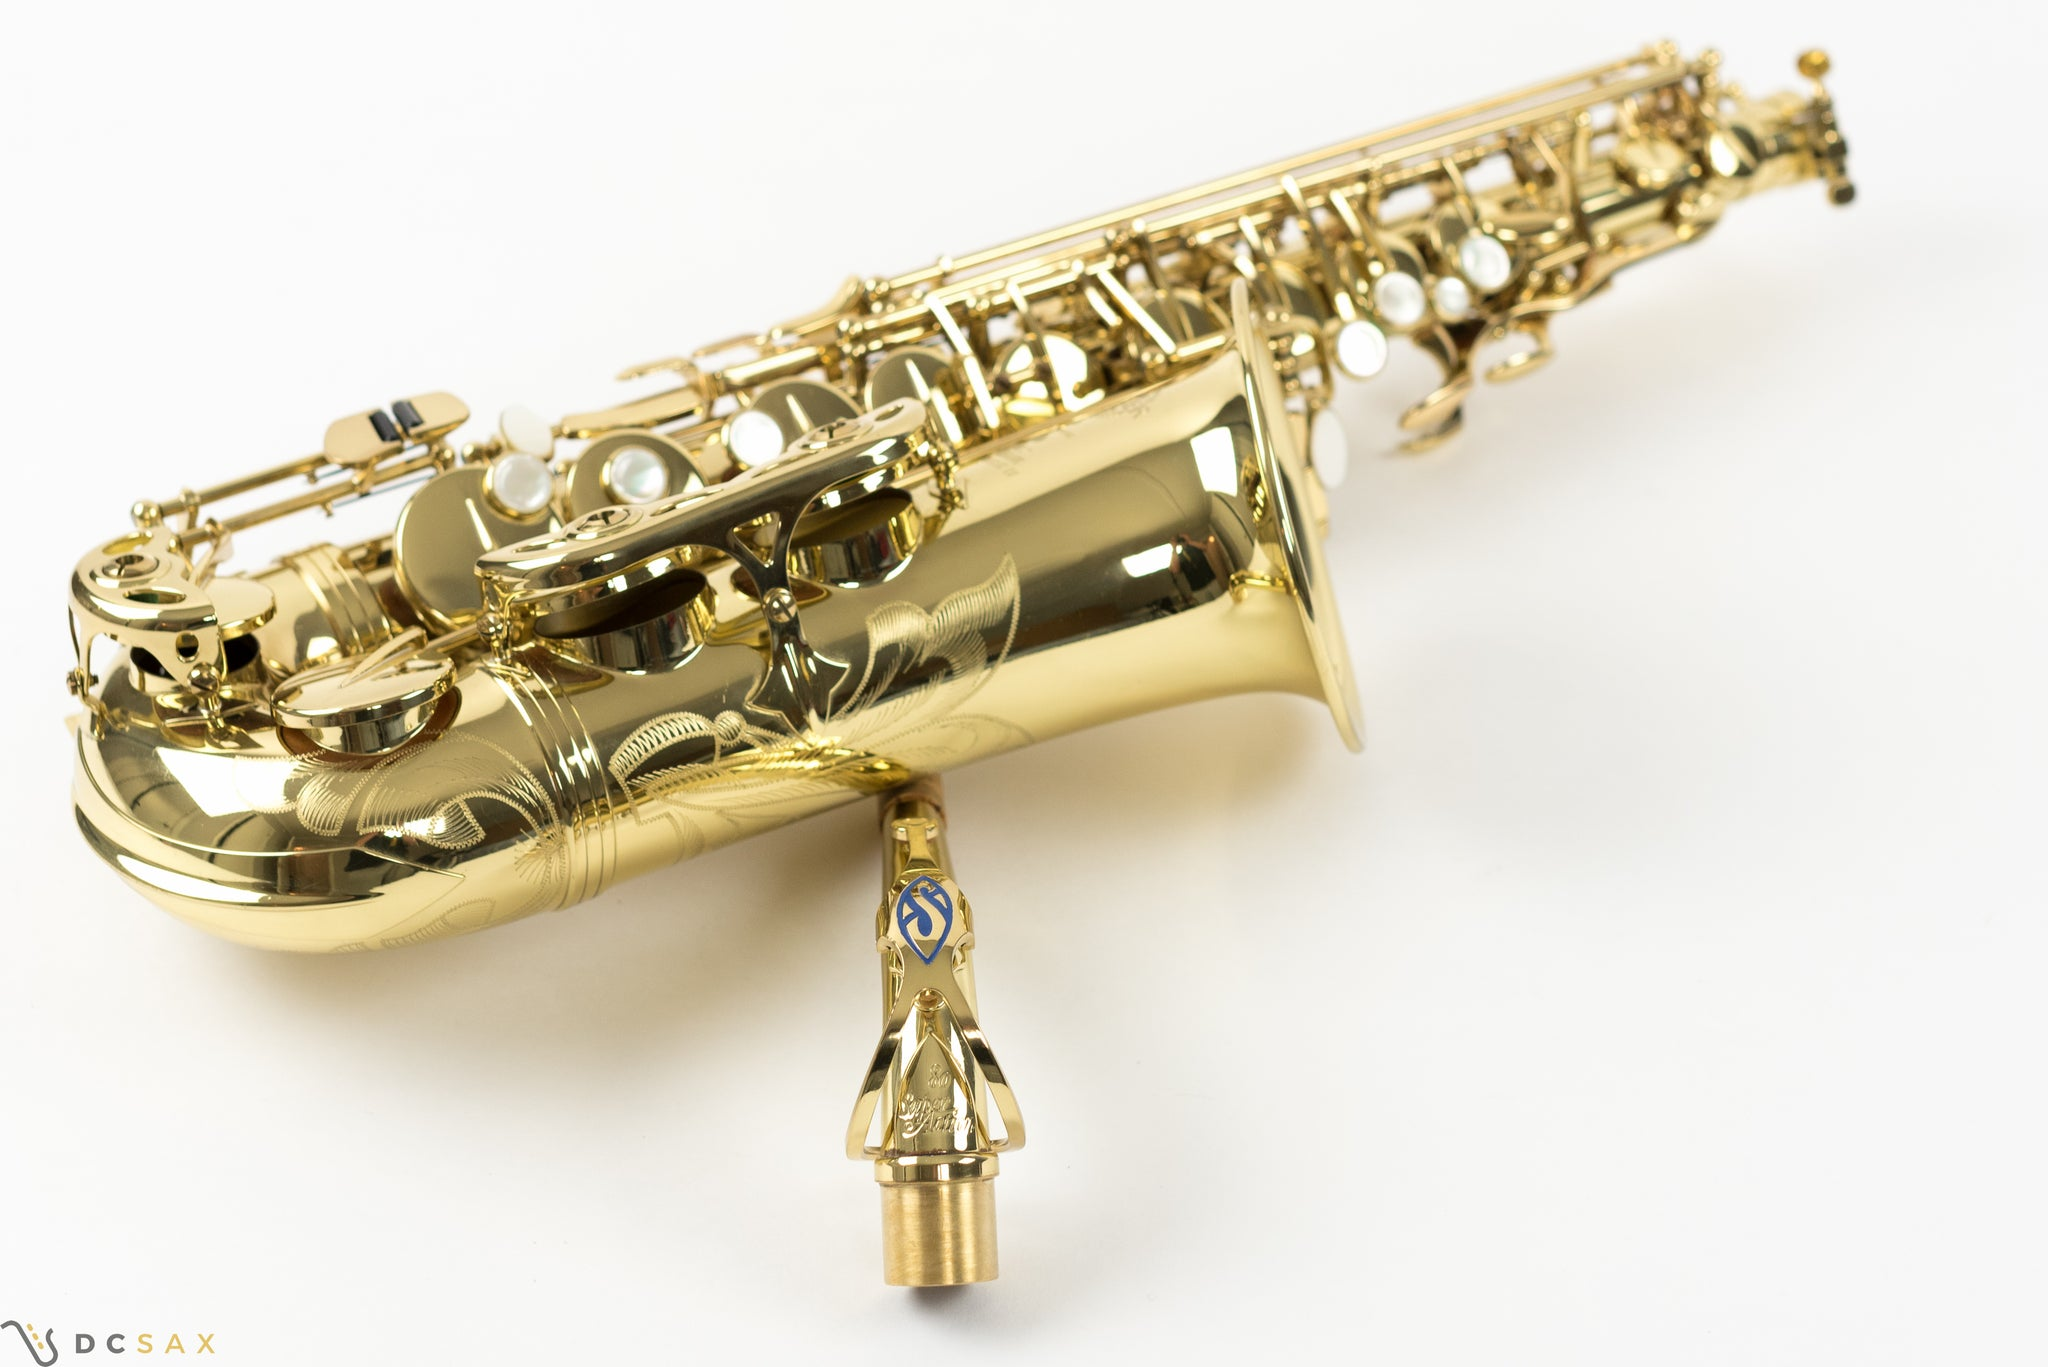 Selmer Super Action Series II Alto Saxophone, Excellent Condition, Just Serviced